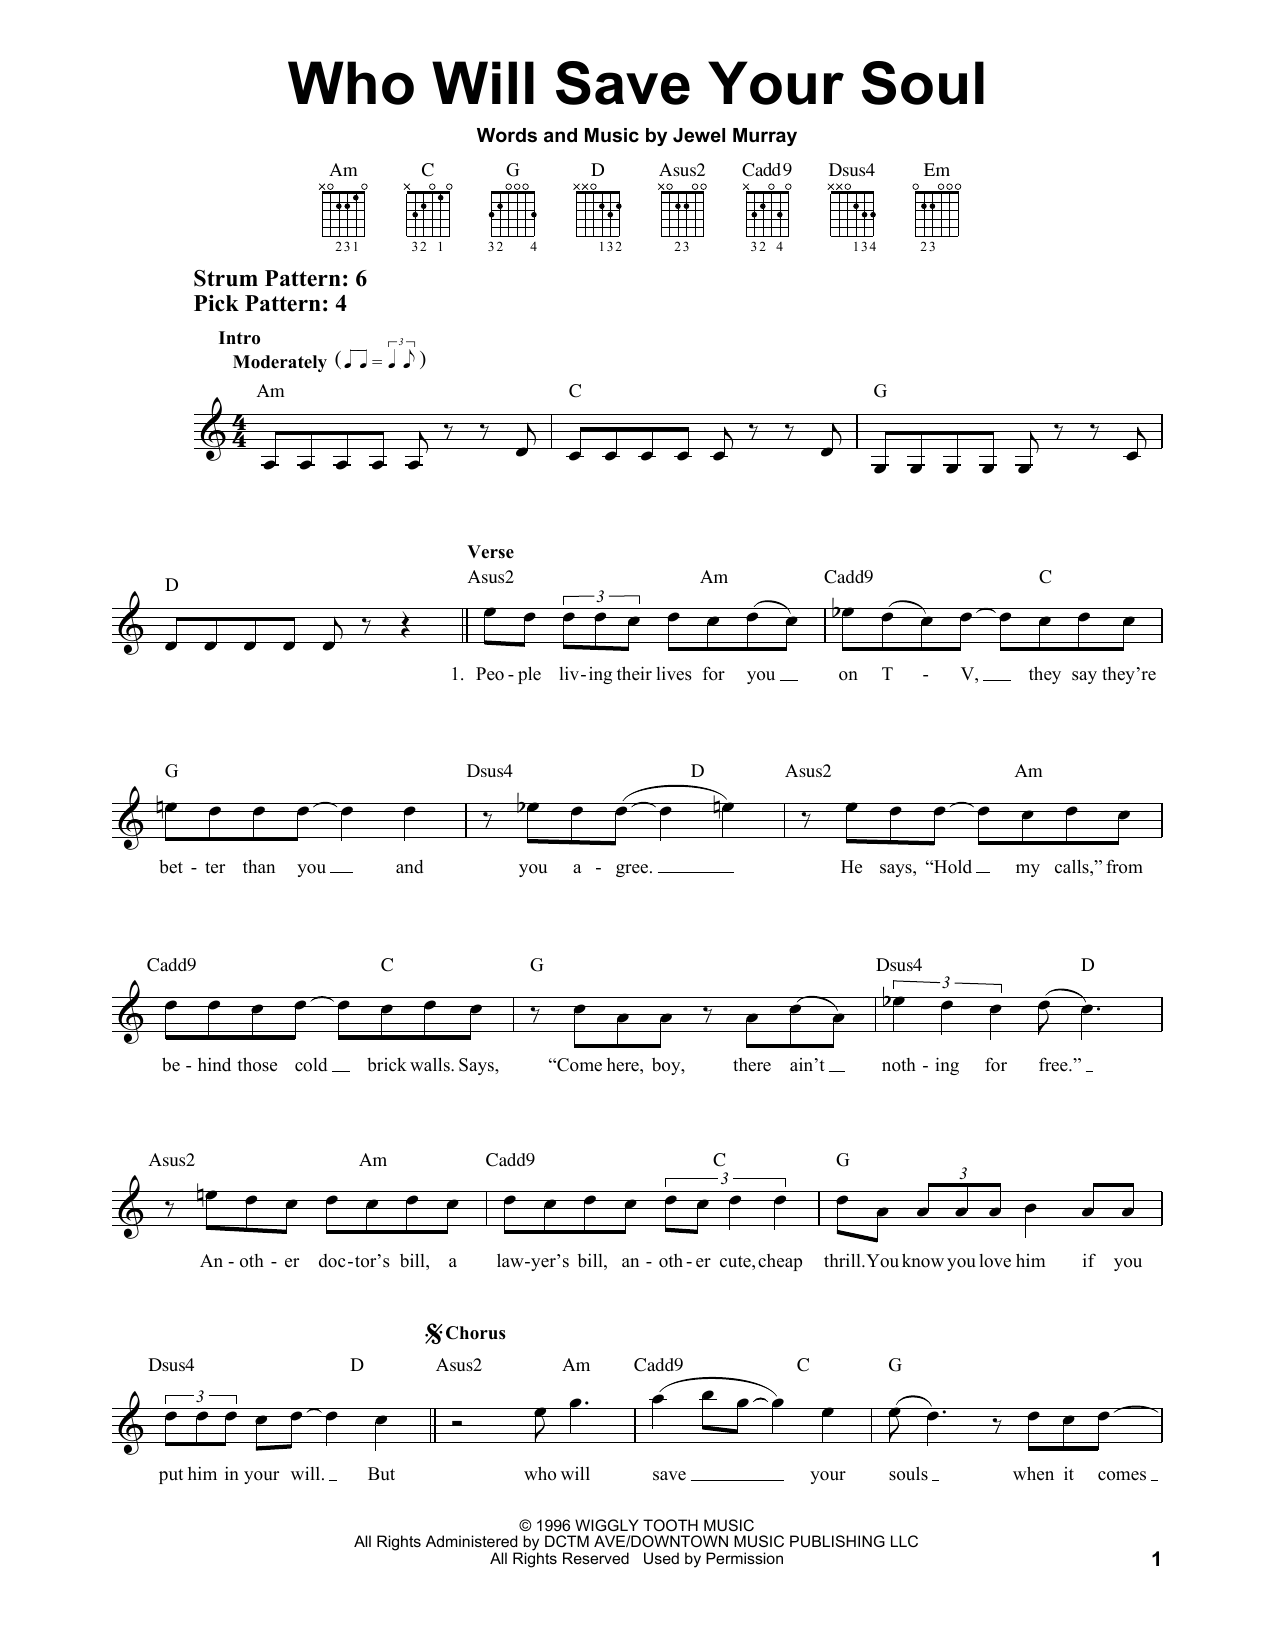 Who Will Save Your Soul Sheet Music